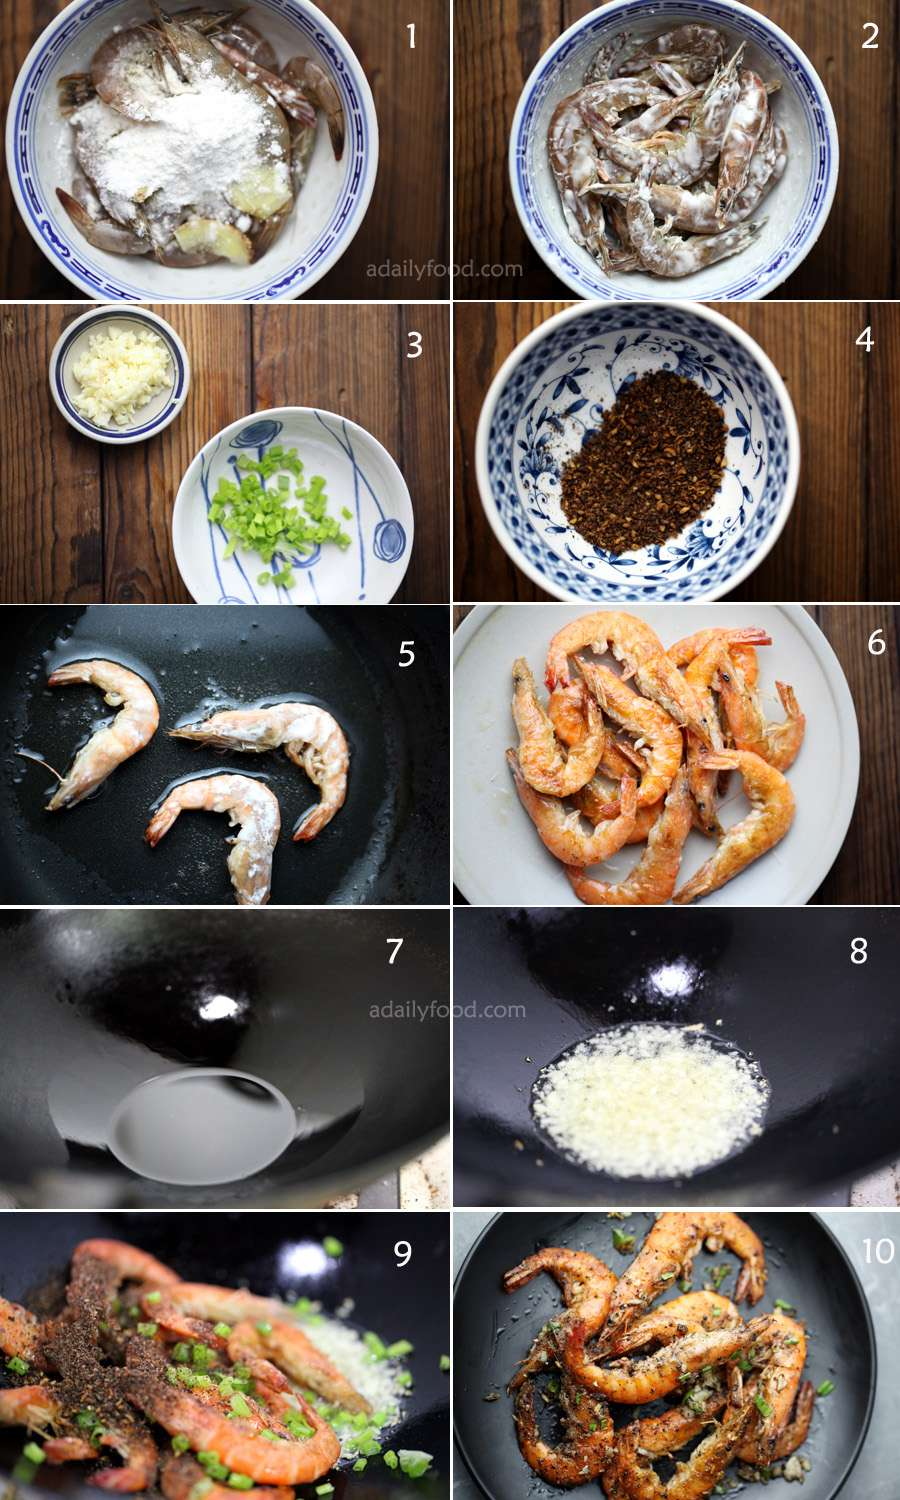 1) Ingredients: shrimp with cornstarch,ginger.cooking wine,2) mixed them,3)chopped scallion, garlic,4) pepper powder,5)pan-frined shrimp,6) transfer to a plate.7) add oil to a wok, 8) add chopped garlic,9) add shrimp, scallion, pepper powder, 10)served